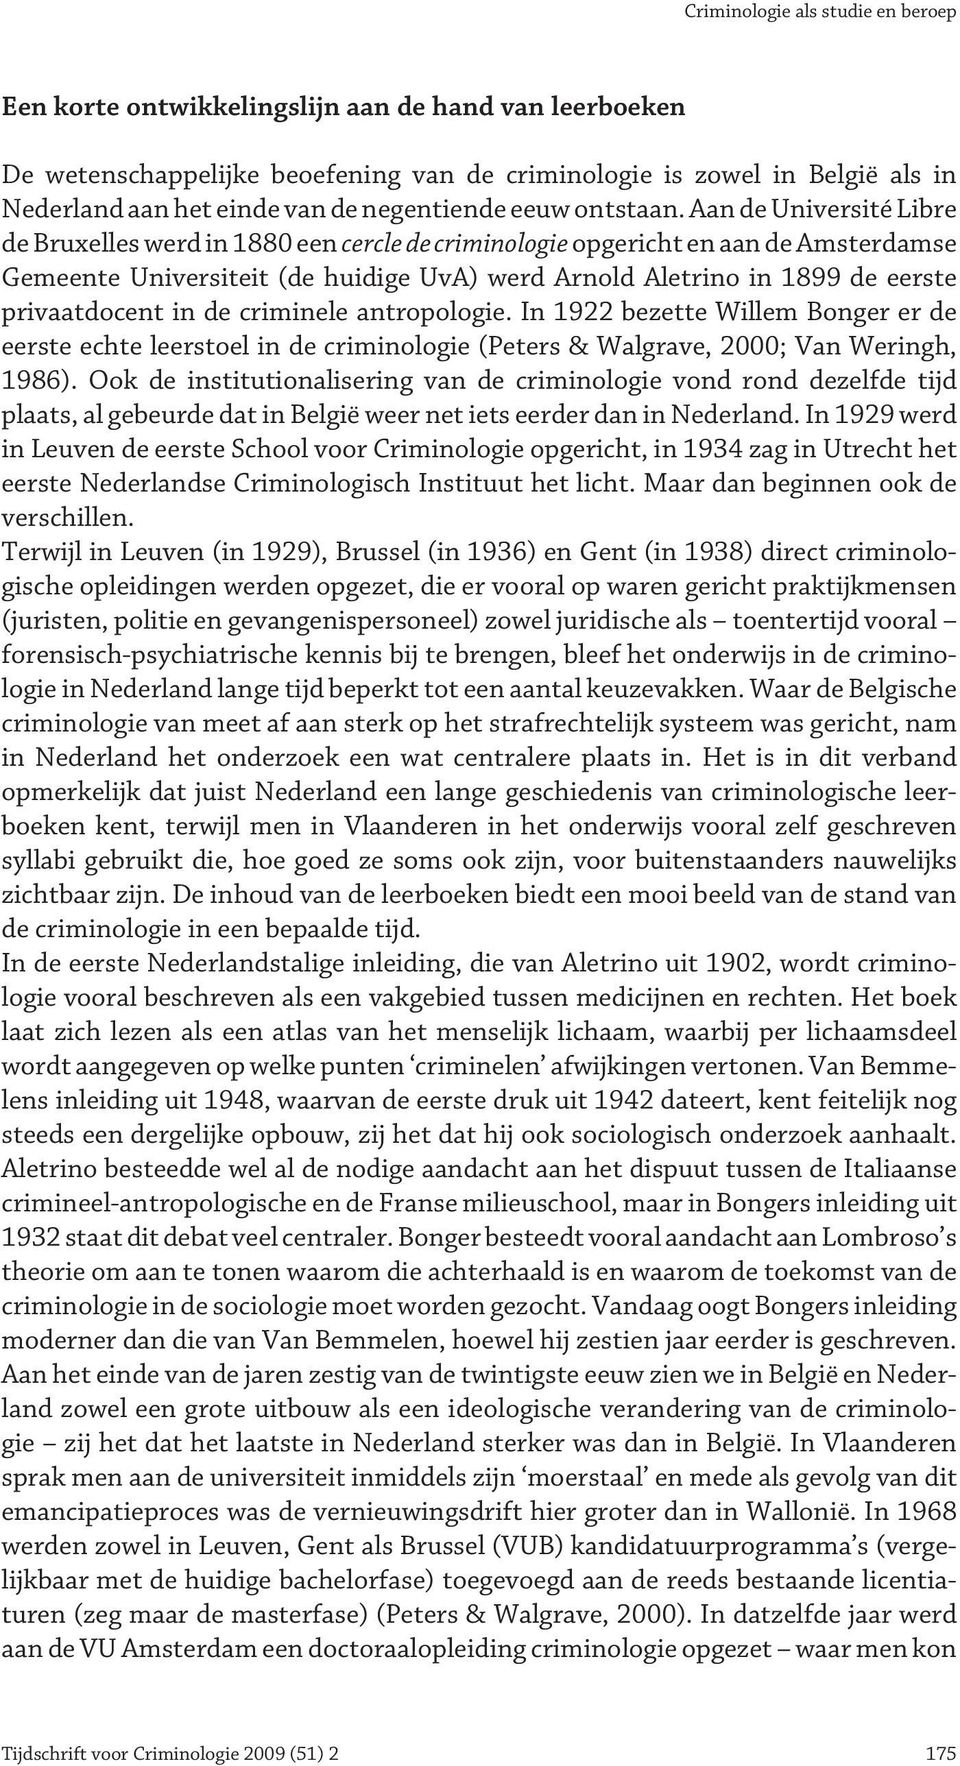 privaatdocent in de criminele antropologie. In 1922 bezette Willem Bonger er de eerste echte leerstoel in de criminologie (Peters & Walgrave, 2000; Van Weringh, 1986).